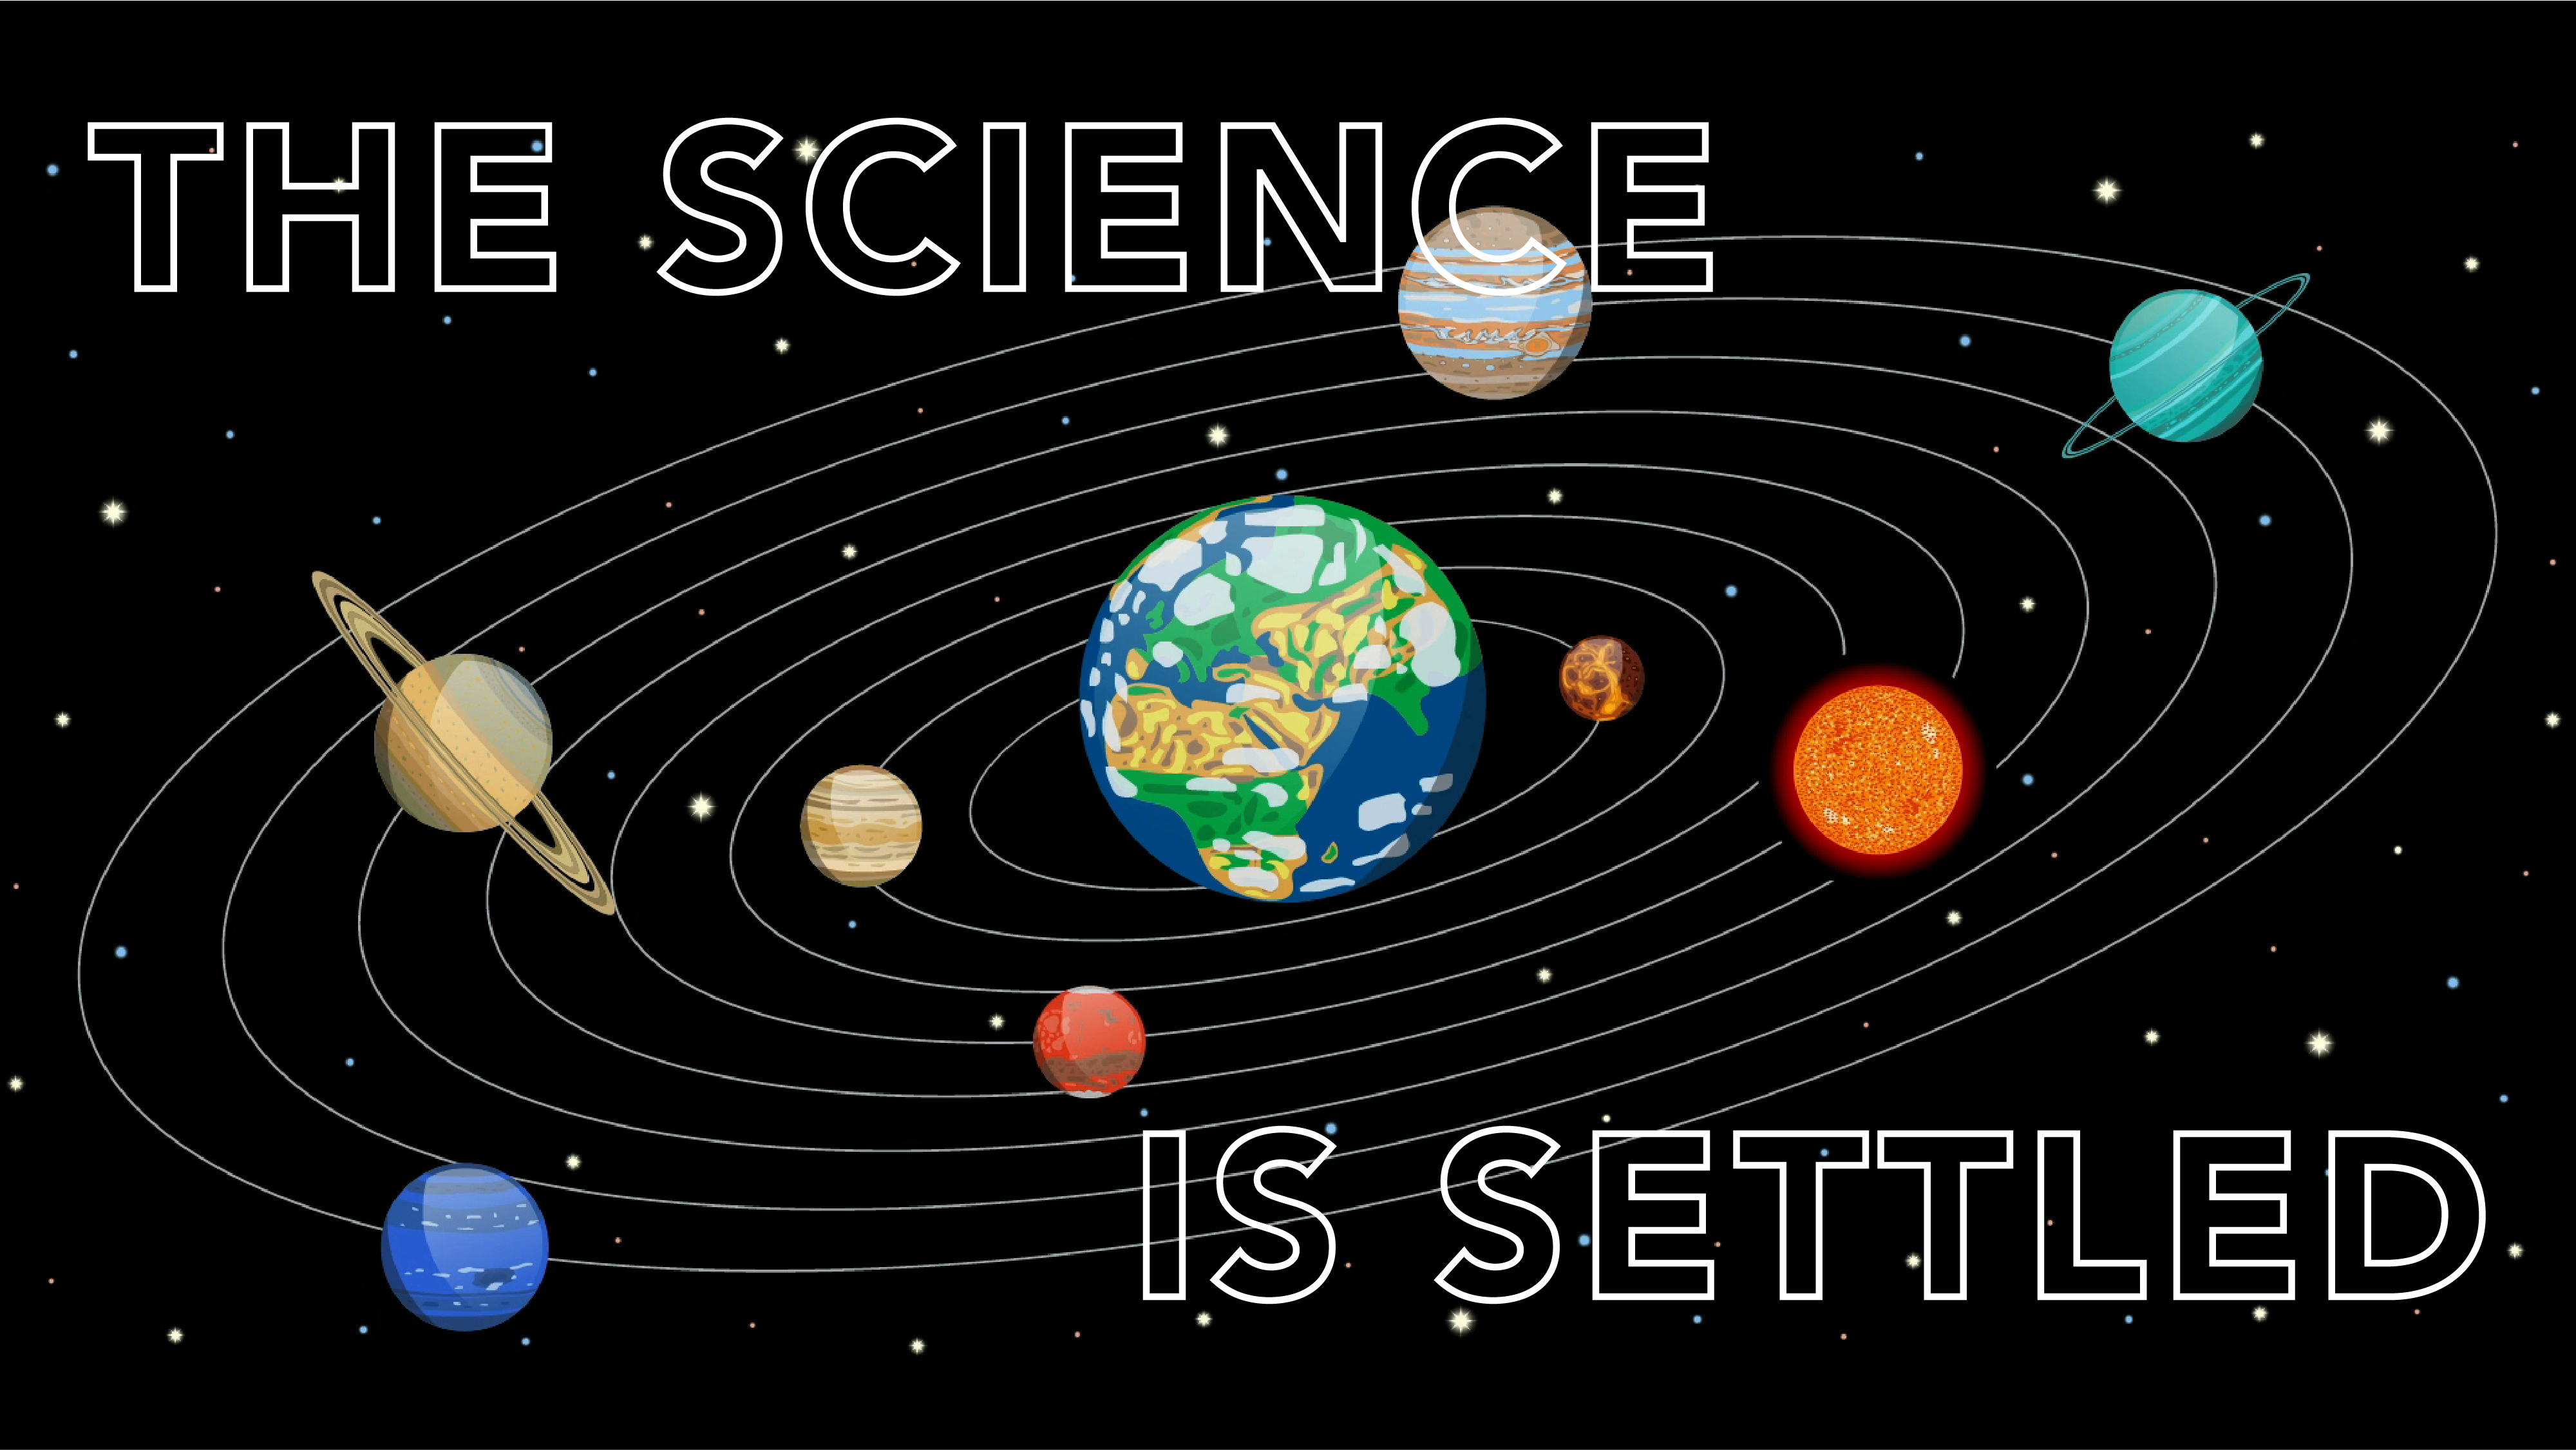 The Science is Settled